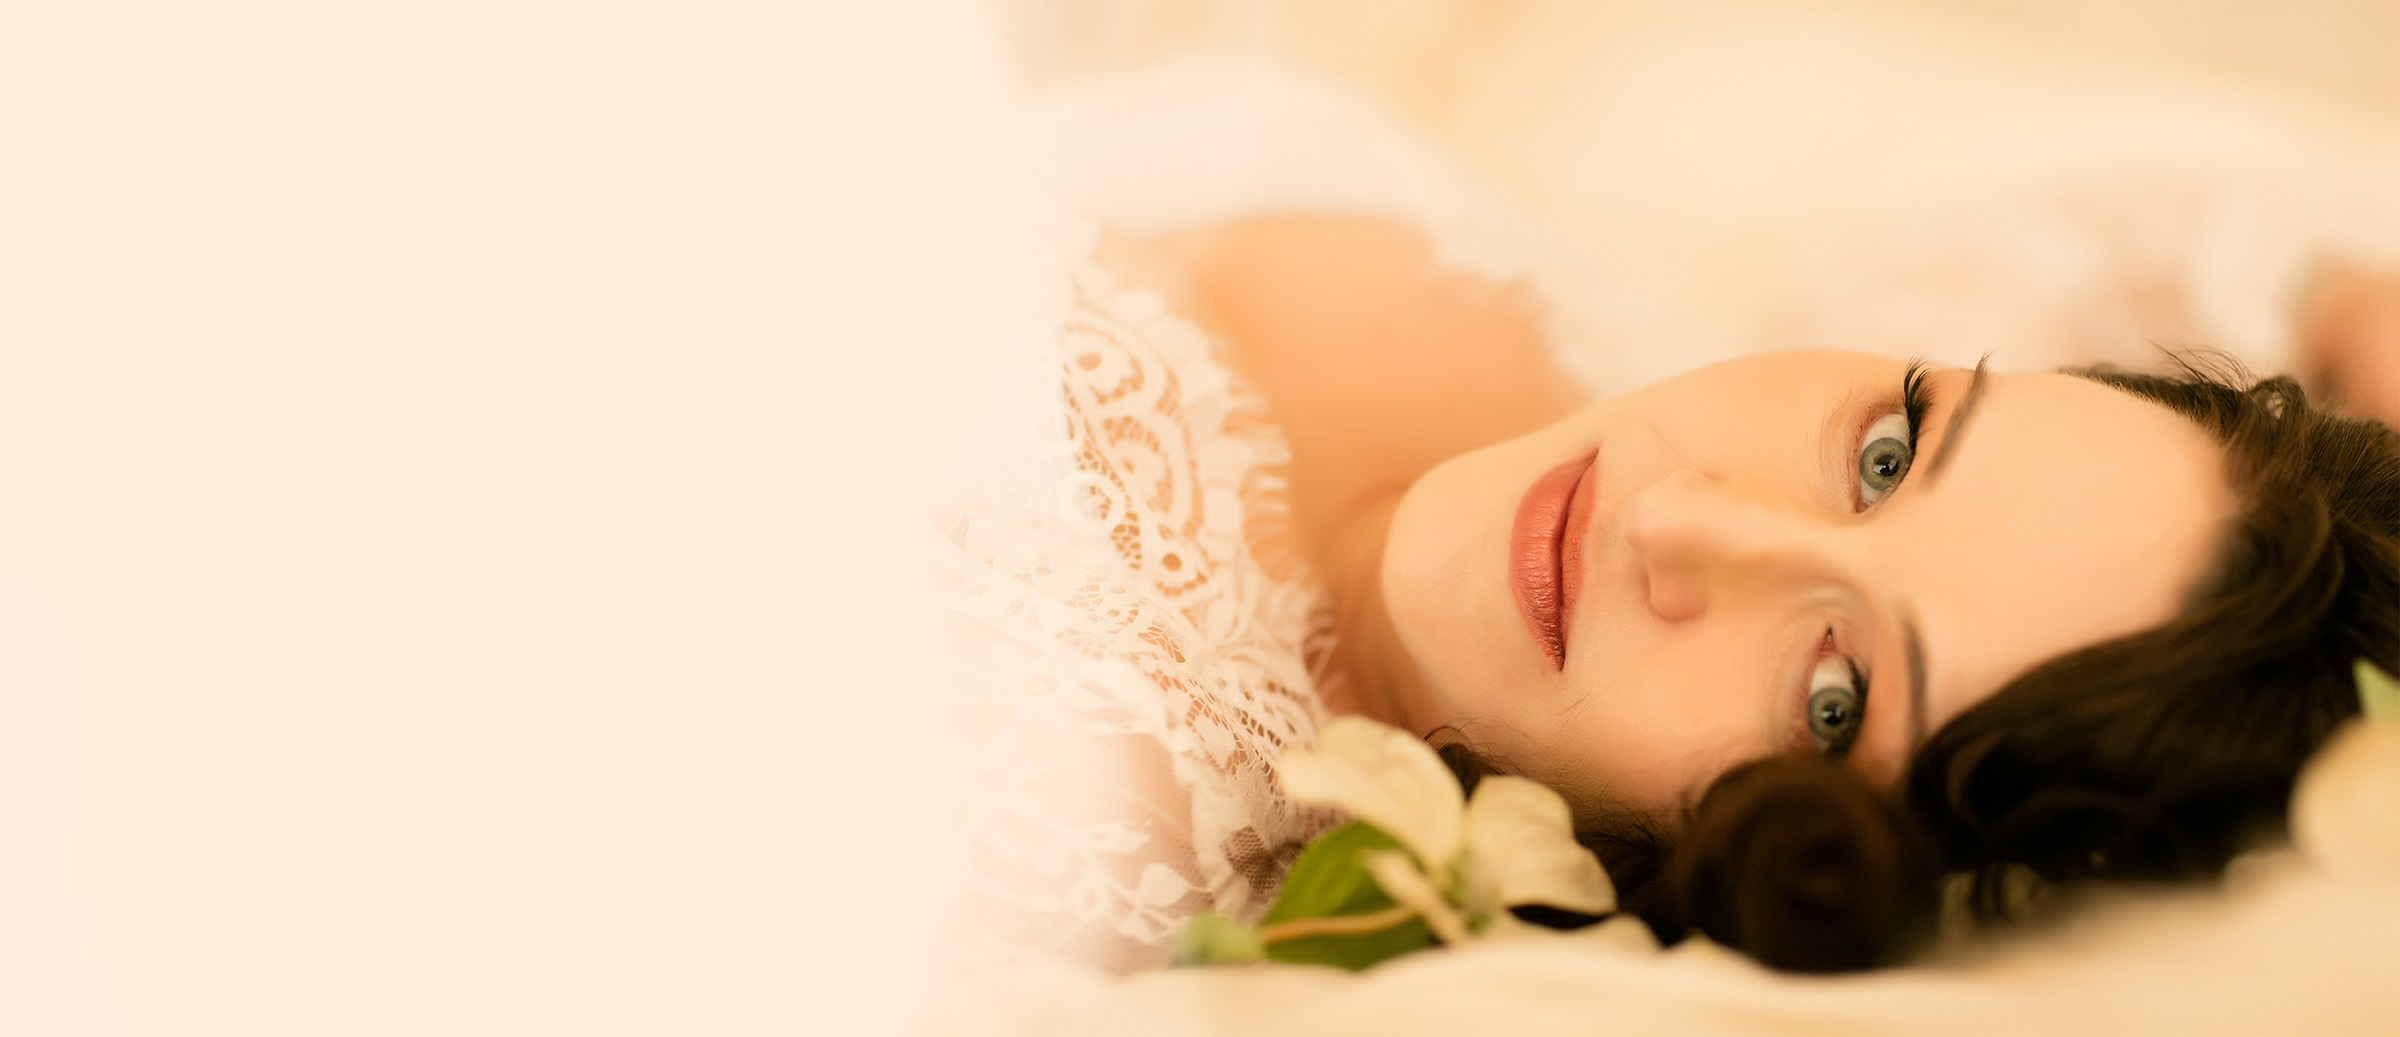 Boudoir Image of a womans face on the bed